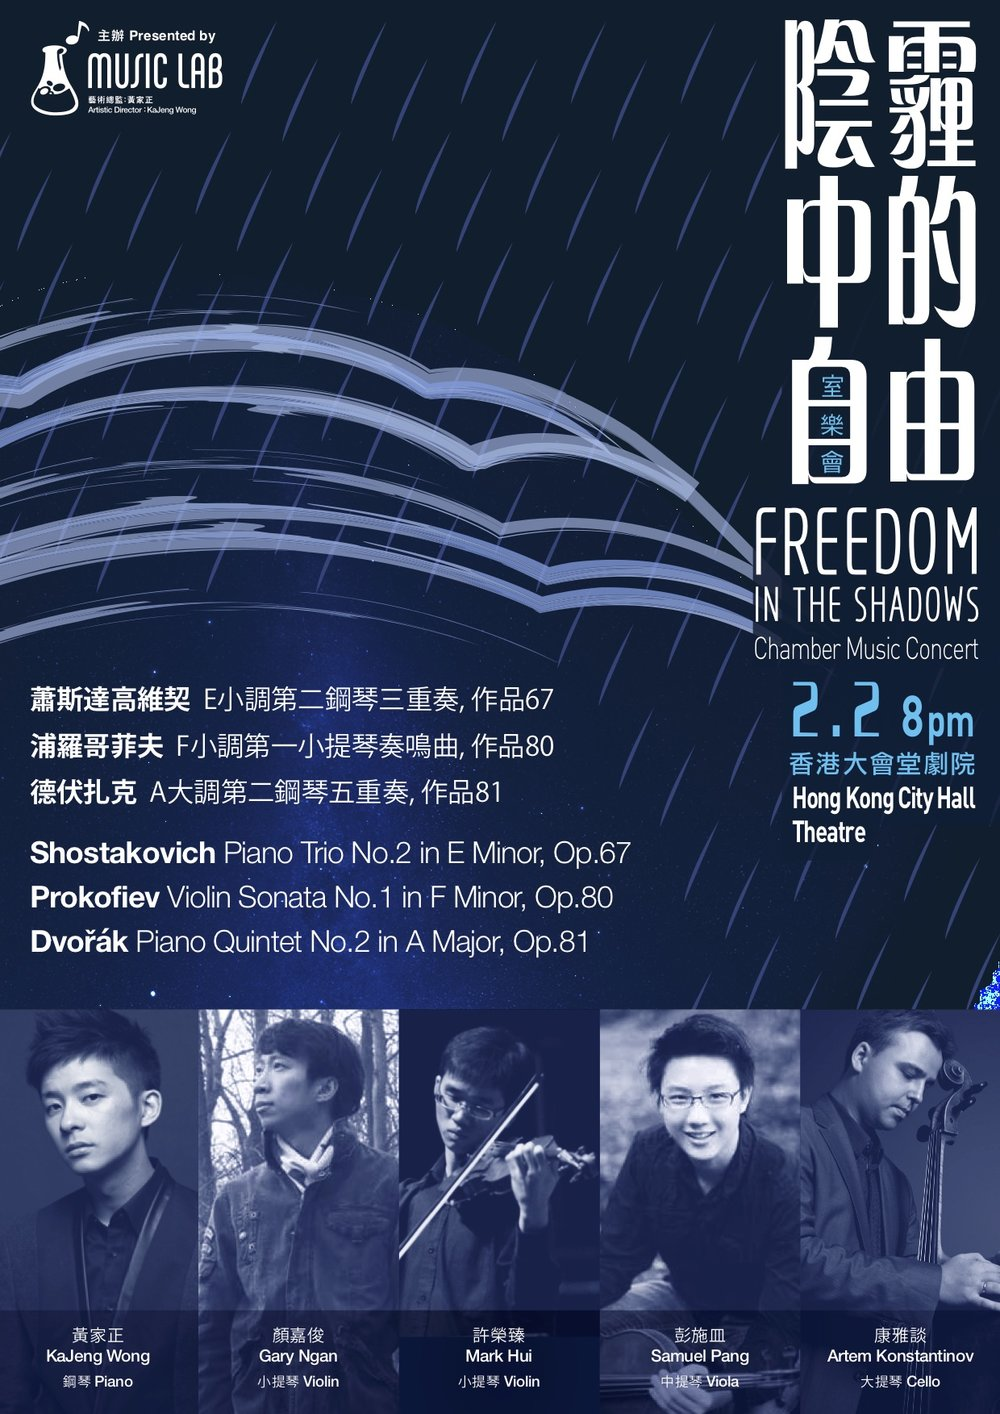 Freedom in the Shadows Chamber Music Concert - Never yielded, our giants yearned for freedom in shadows,Withered their bodies may be, their spiritsNever waned; they may beGone, but their ethos will pass on.PROGRAMMEPiano Trio No.2 in E Minor, Op.67 – ShostakovichKaJeng Wong (Piano), Gary Ngan (Violin), Artem Konstantinov (Cello)Violin Sonata No.1 in F Minor, Op.80 – ProkofievKaJeng Wong (Piano), Mark Hui (Violin)Piano Quintet No.2 in A Major, Op.81 – DvořřákKaJeng Wong (Piano), Gary Ngan (Violin), Mark Hui (Violin), Samuel Pang (Viola), Artem Konstantinov (Cello)